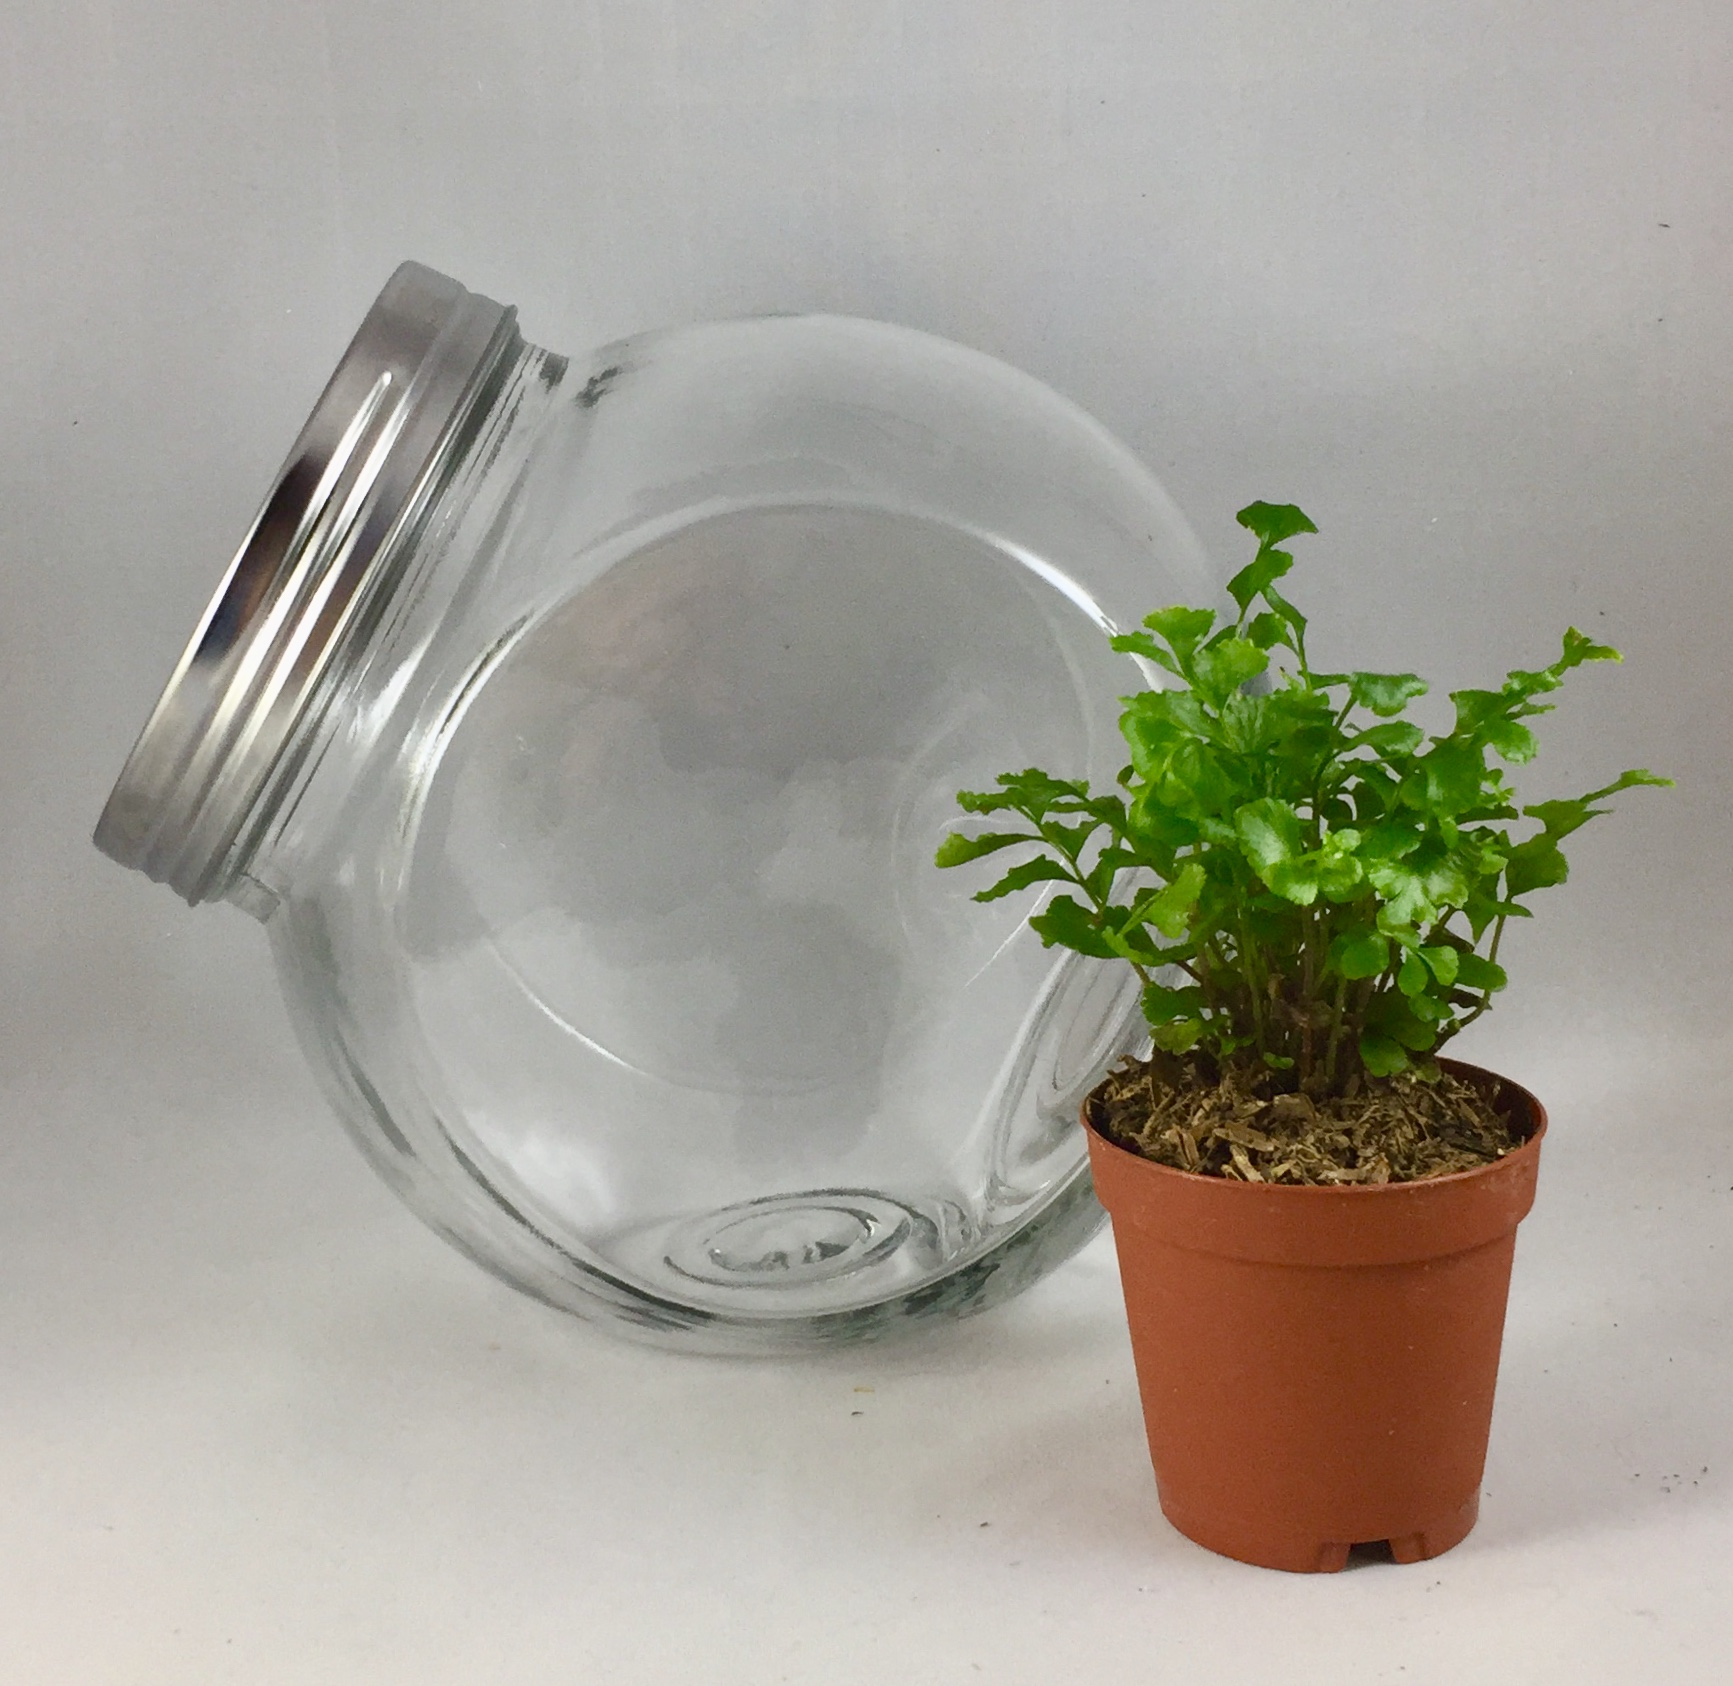 Small Tilted Terrarium - $20 includes: 6 inch round jar, one plant, base sands, dirt, decorations and tote bag.